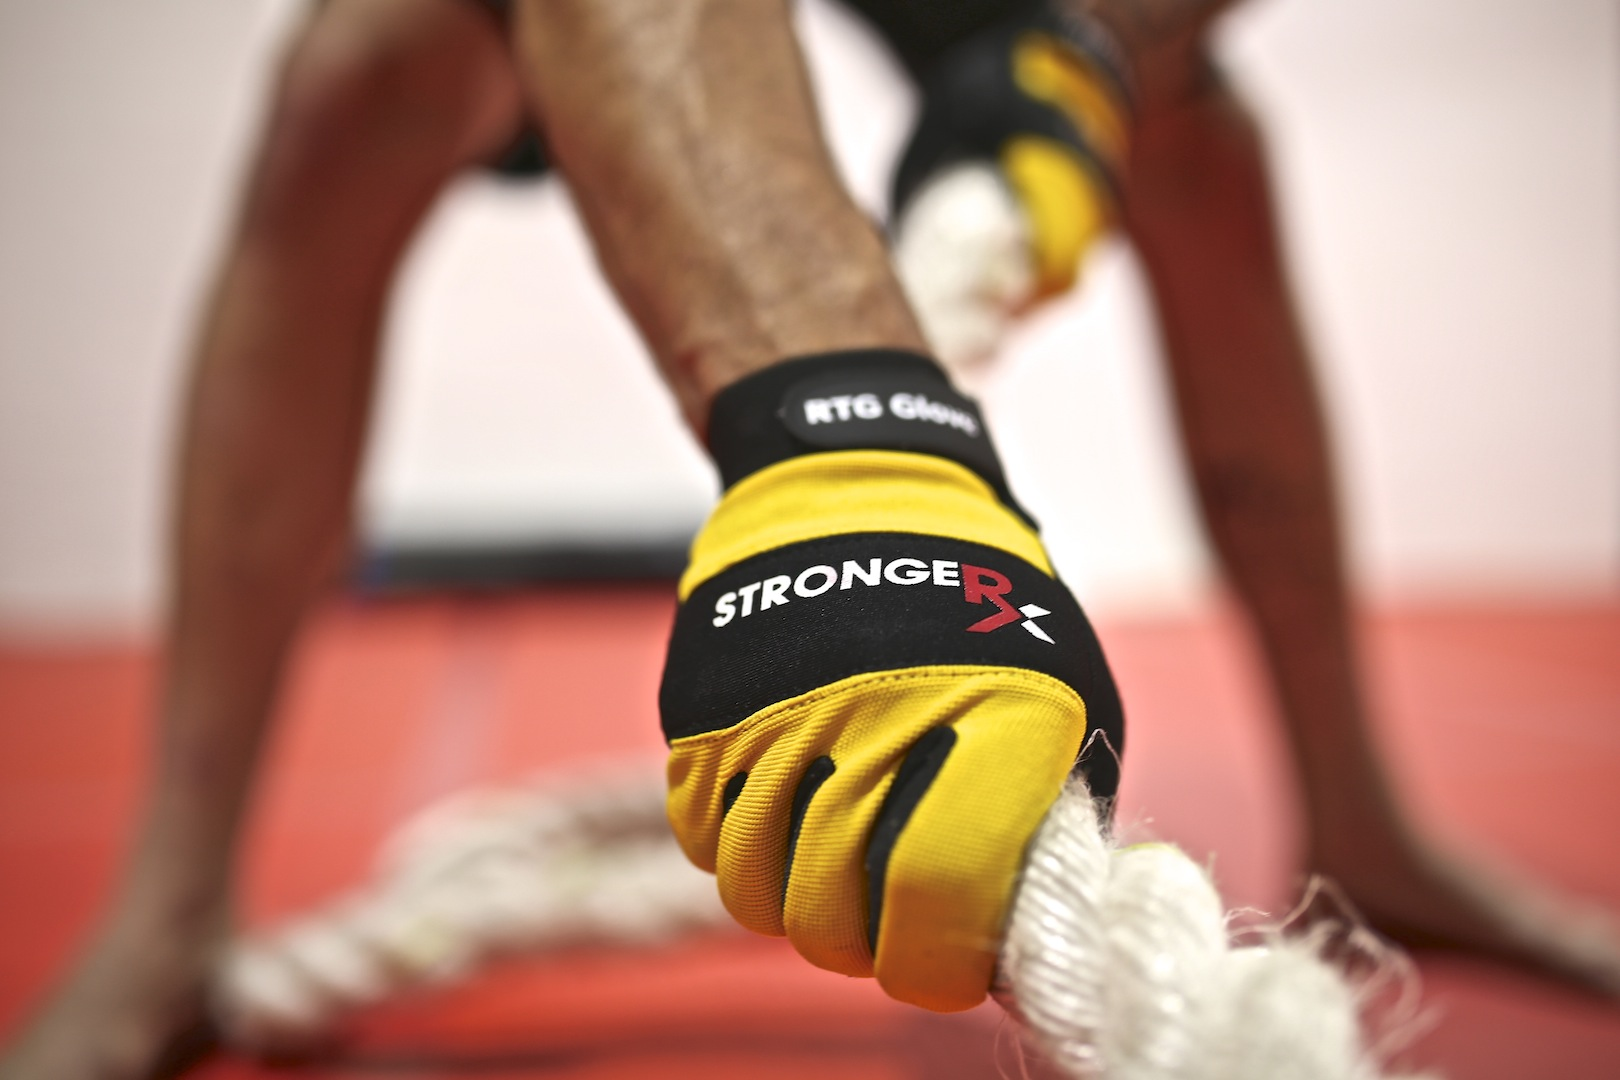 StrongerRx RTG Gloves Rope